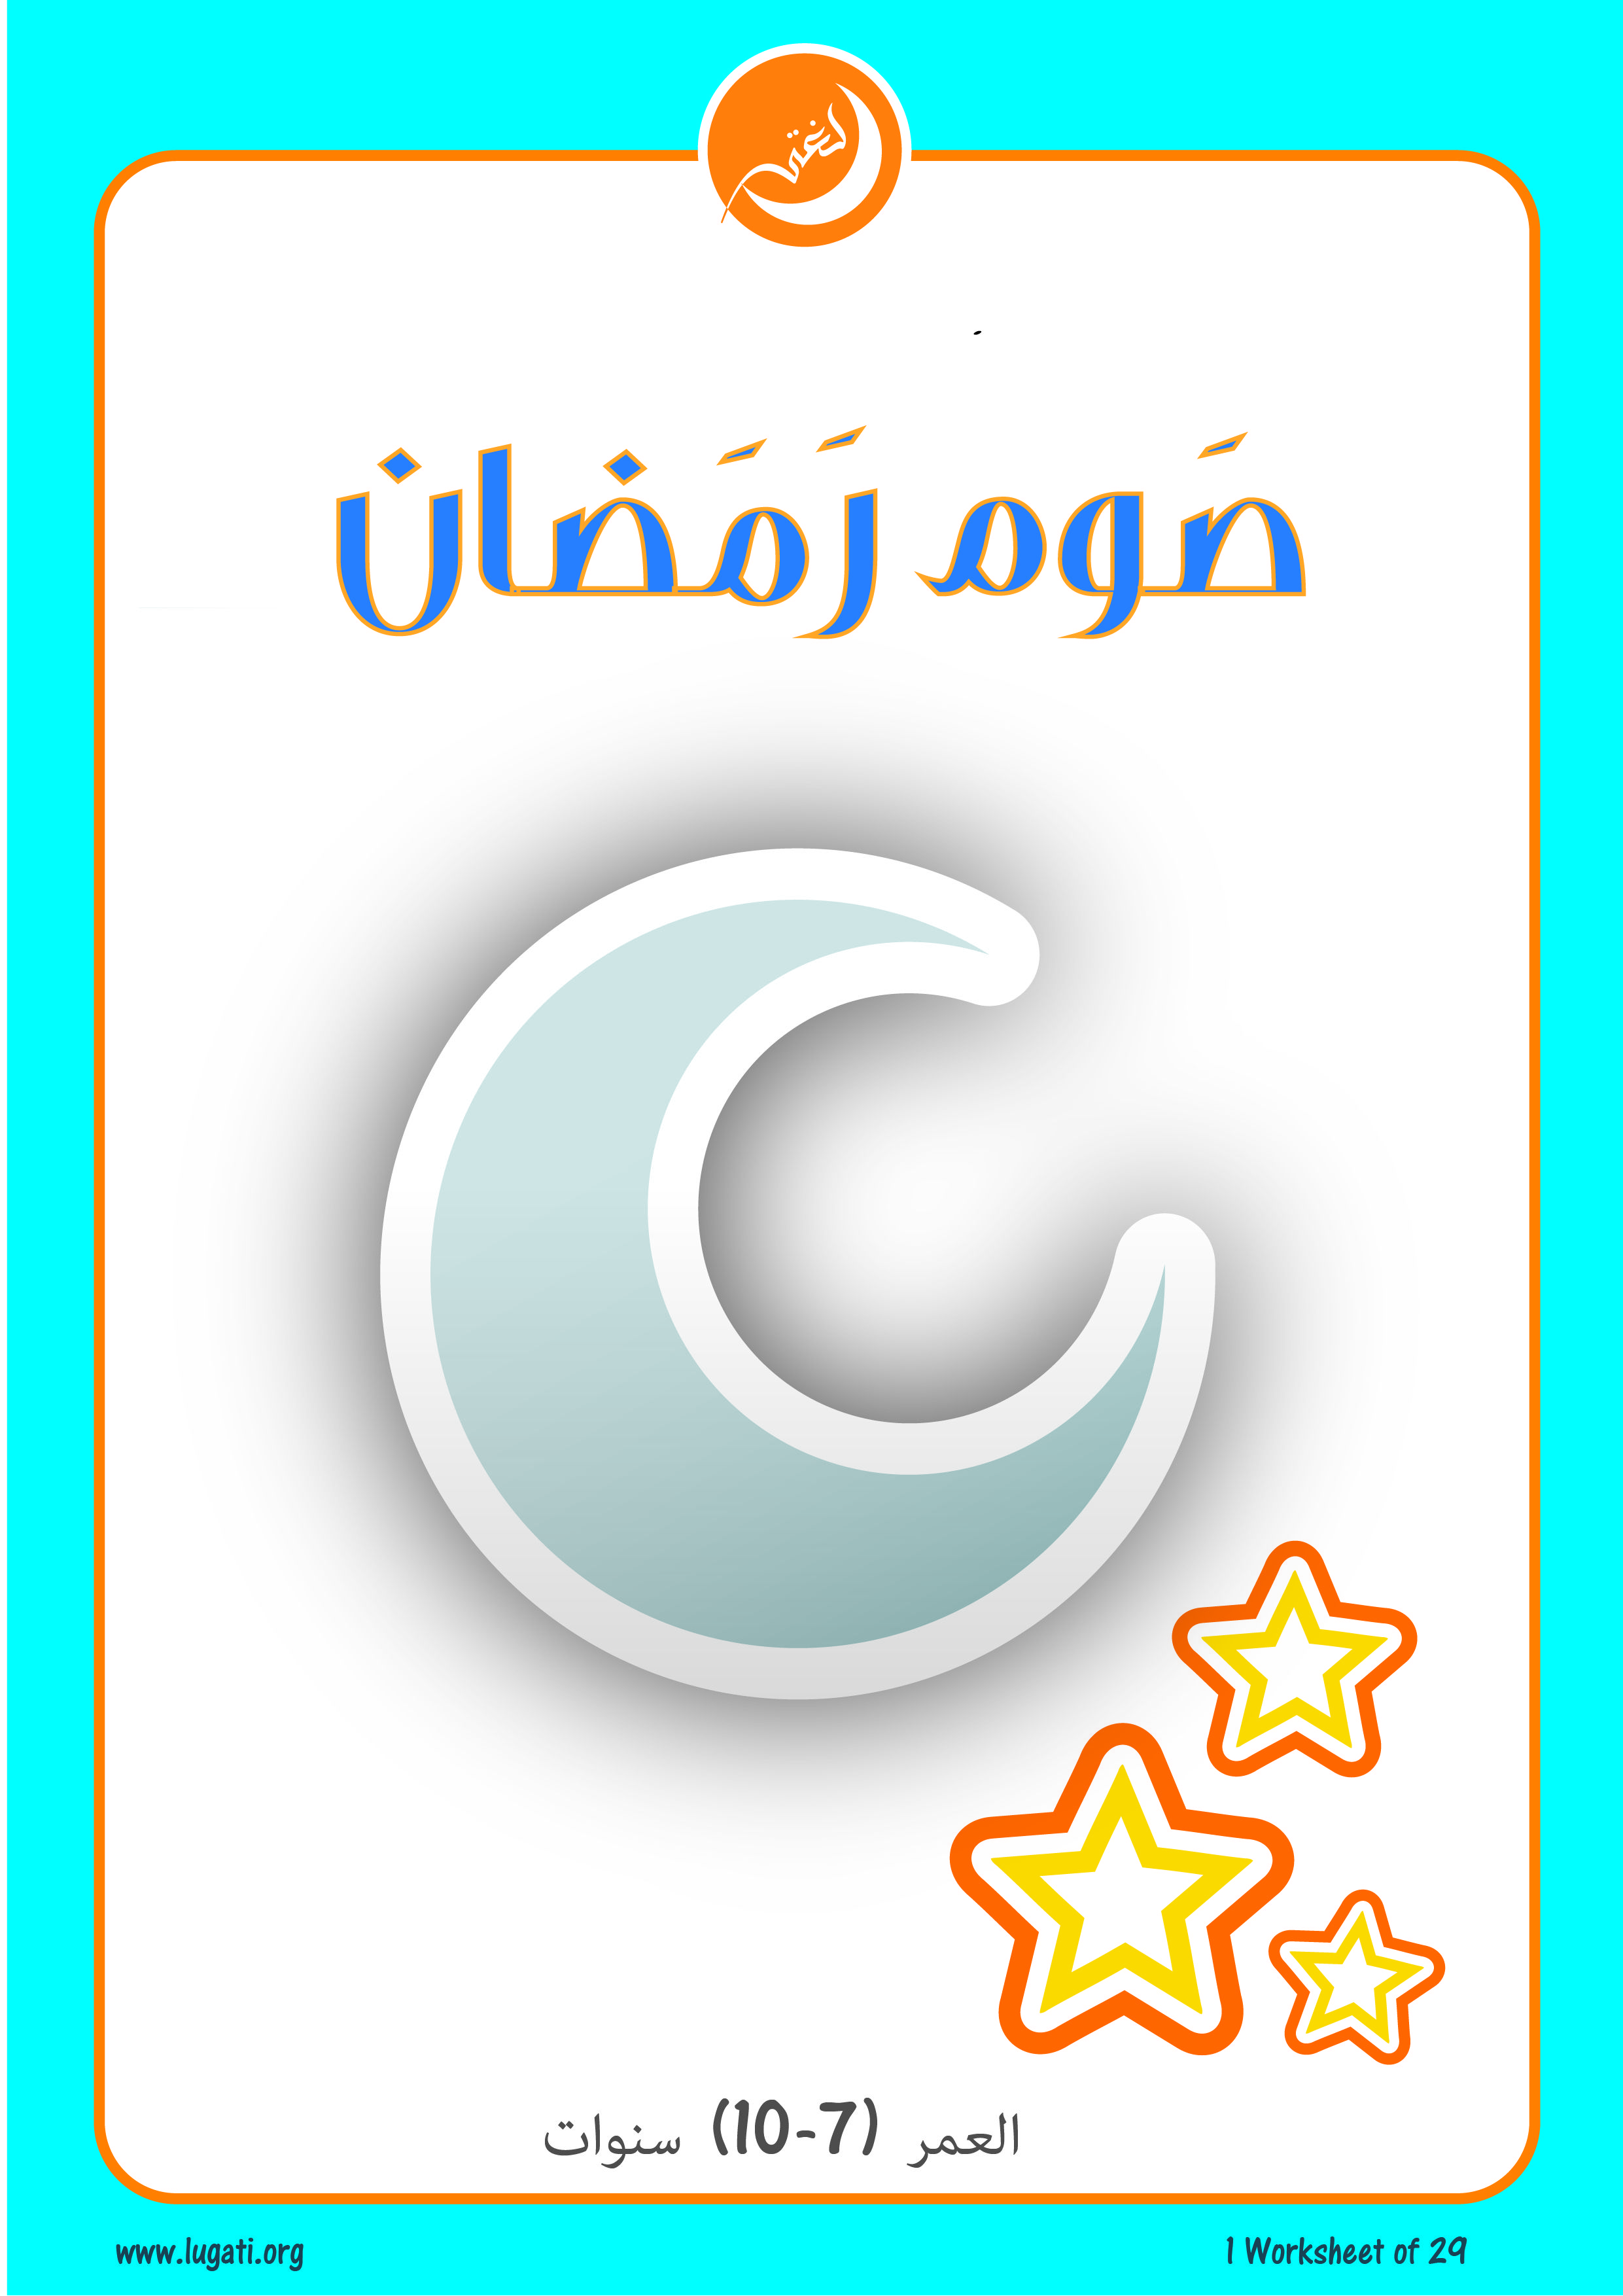 Fasting Sawm Of Ramadan Full File Contains Worksheets For Learning Exercising And T Islamic Books For Kids Islamic Kids Activities Muslim Kids Activities